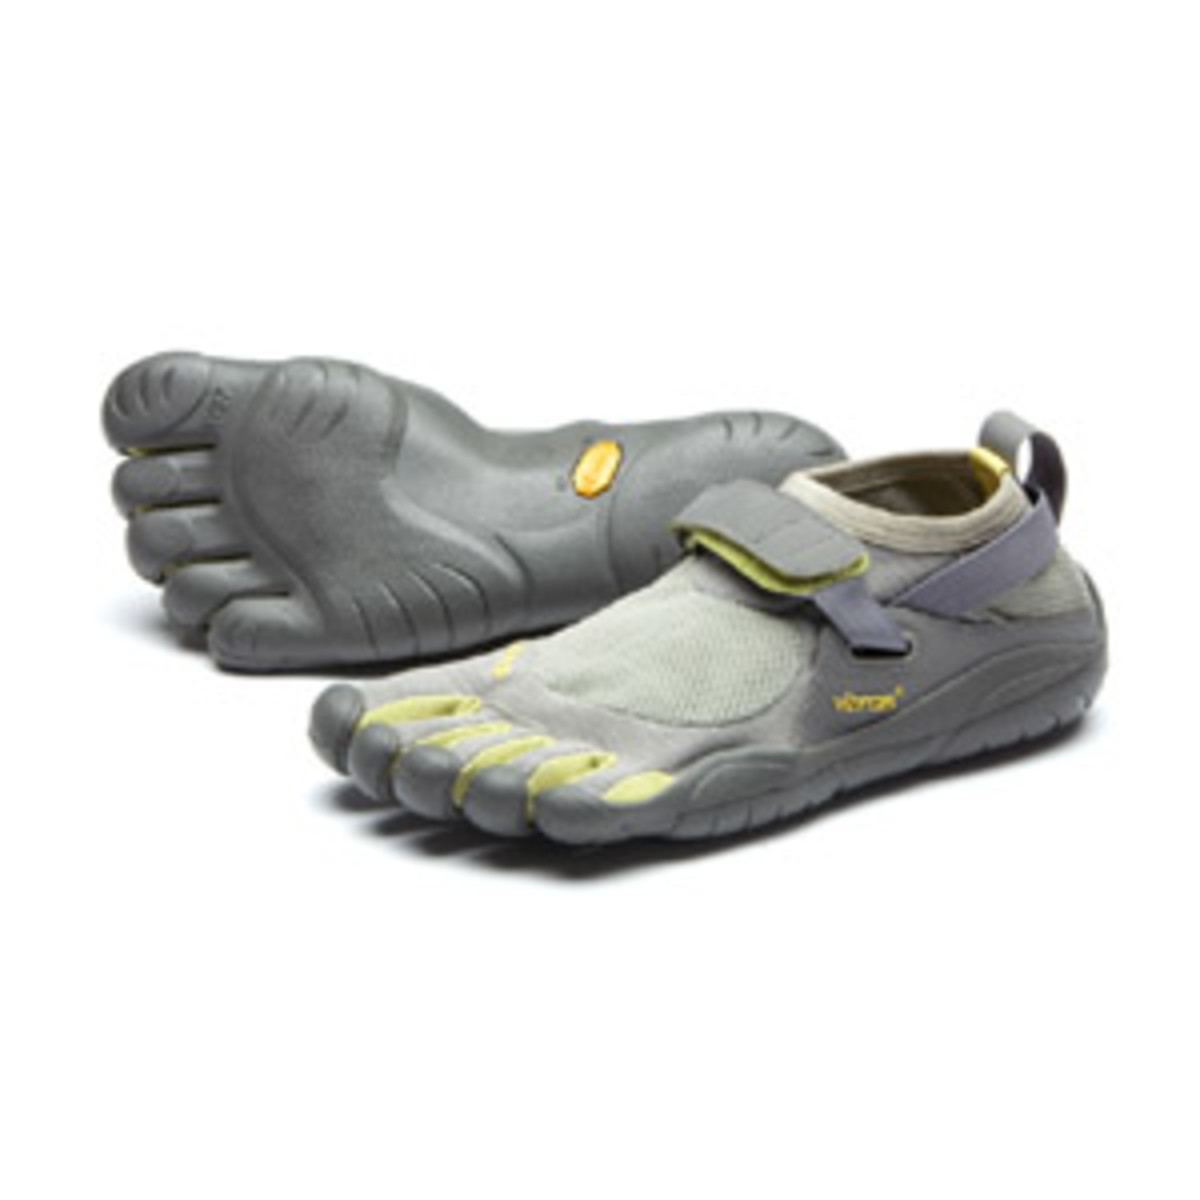 Vibram water shoes with toes